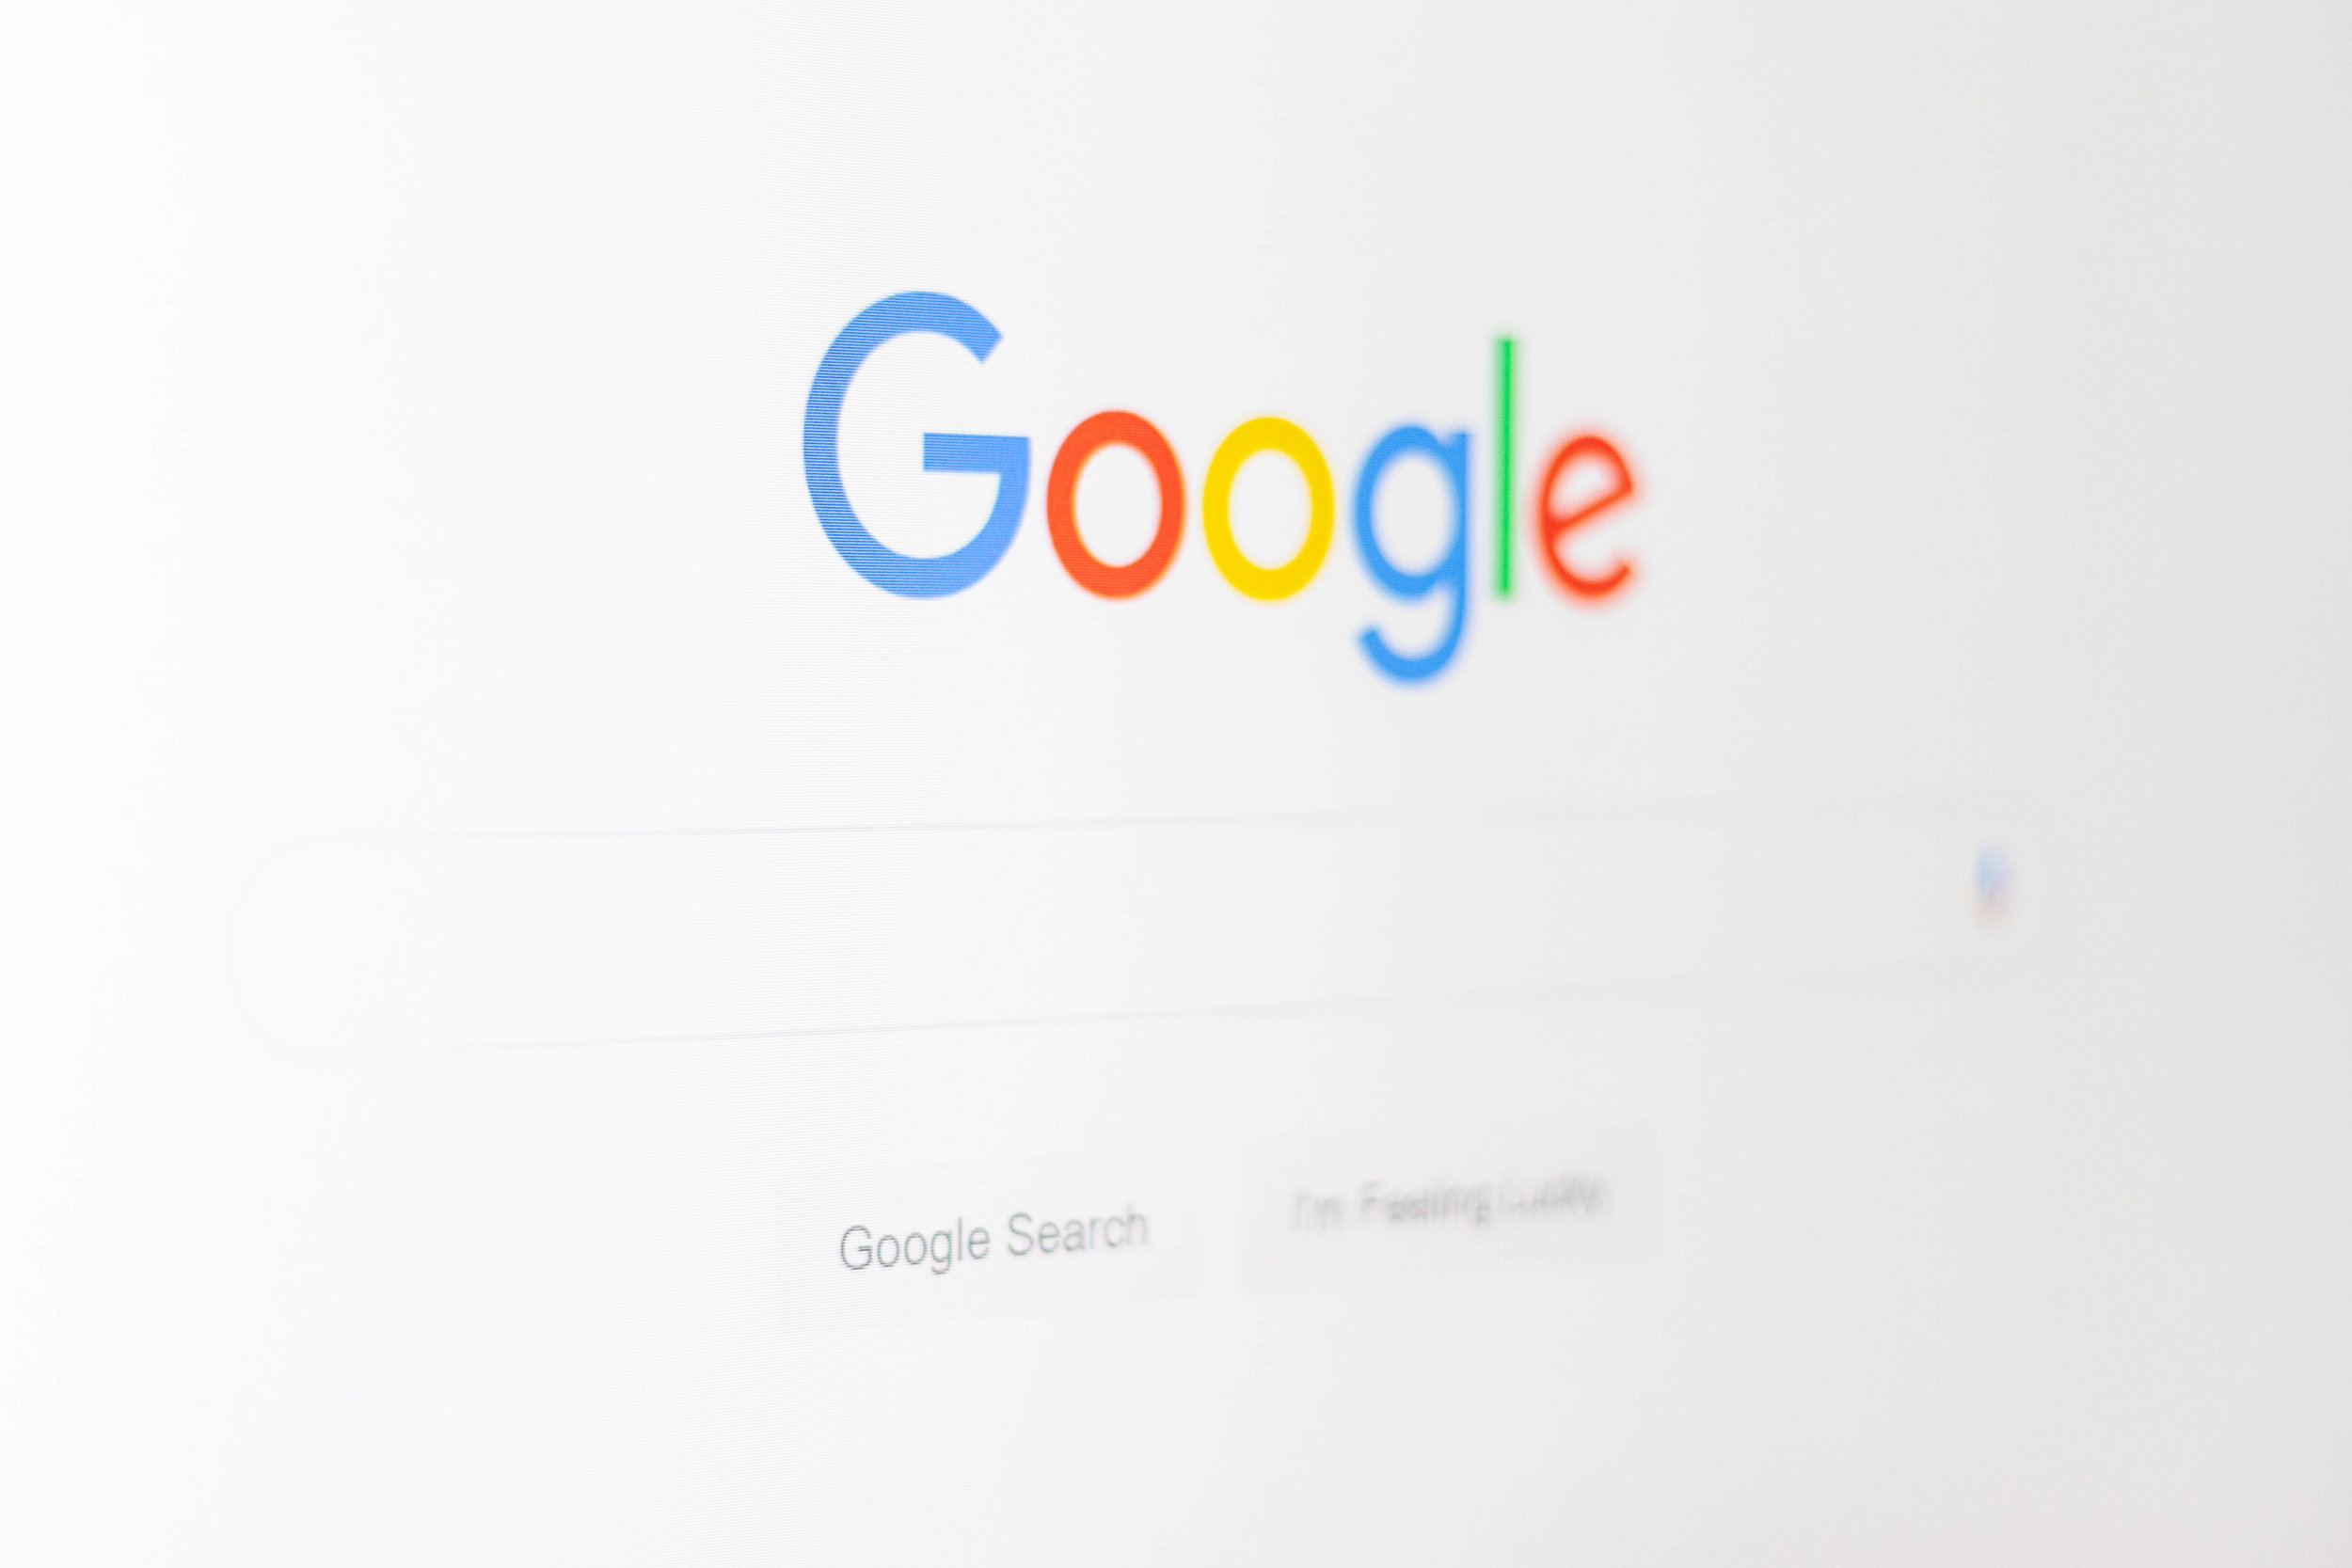 Google Ads - We build campaigns that drive huge results by researching opportunities through Google.